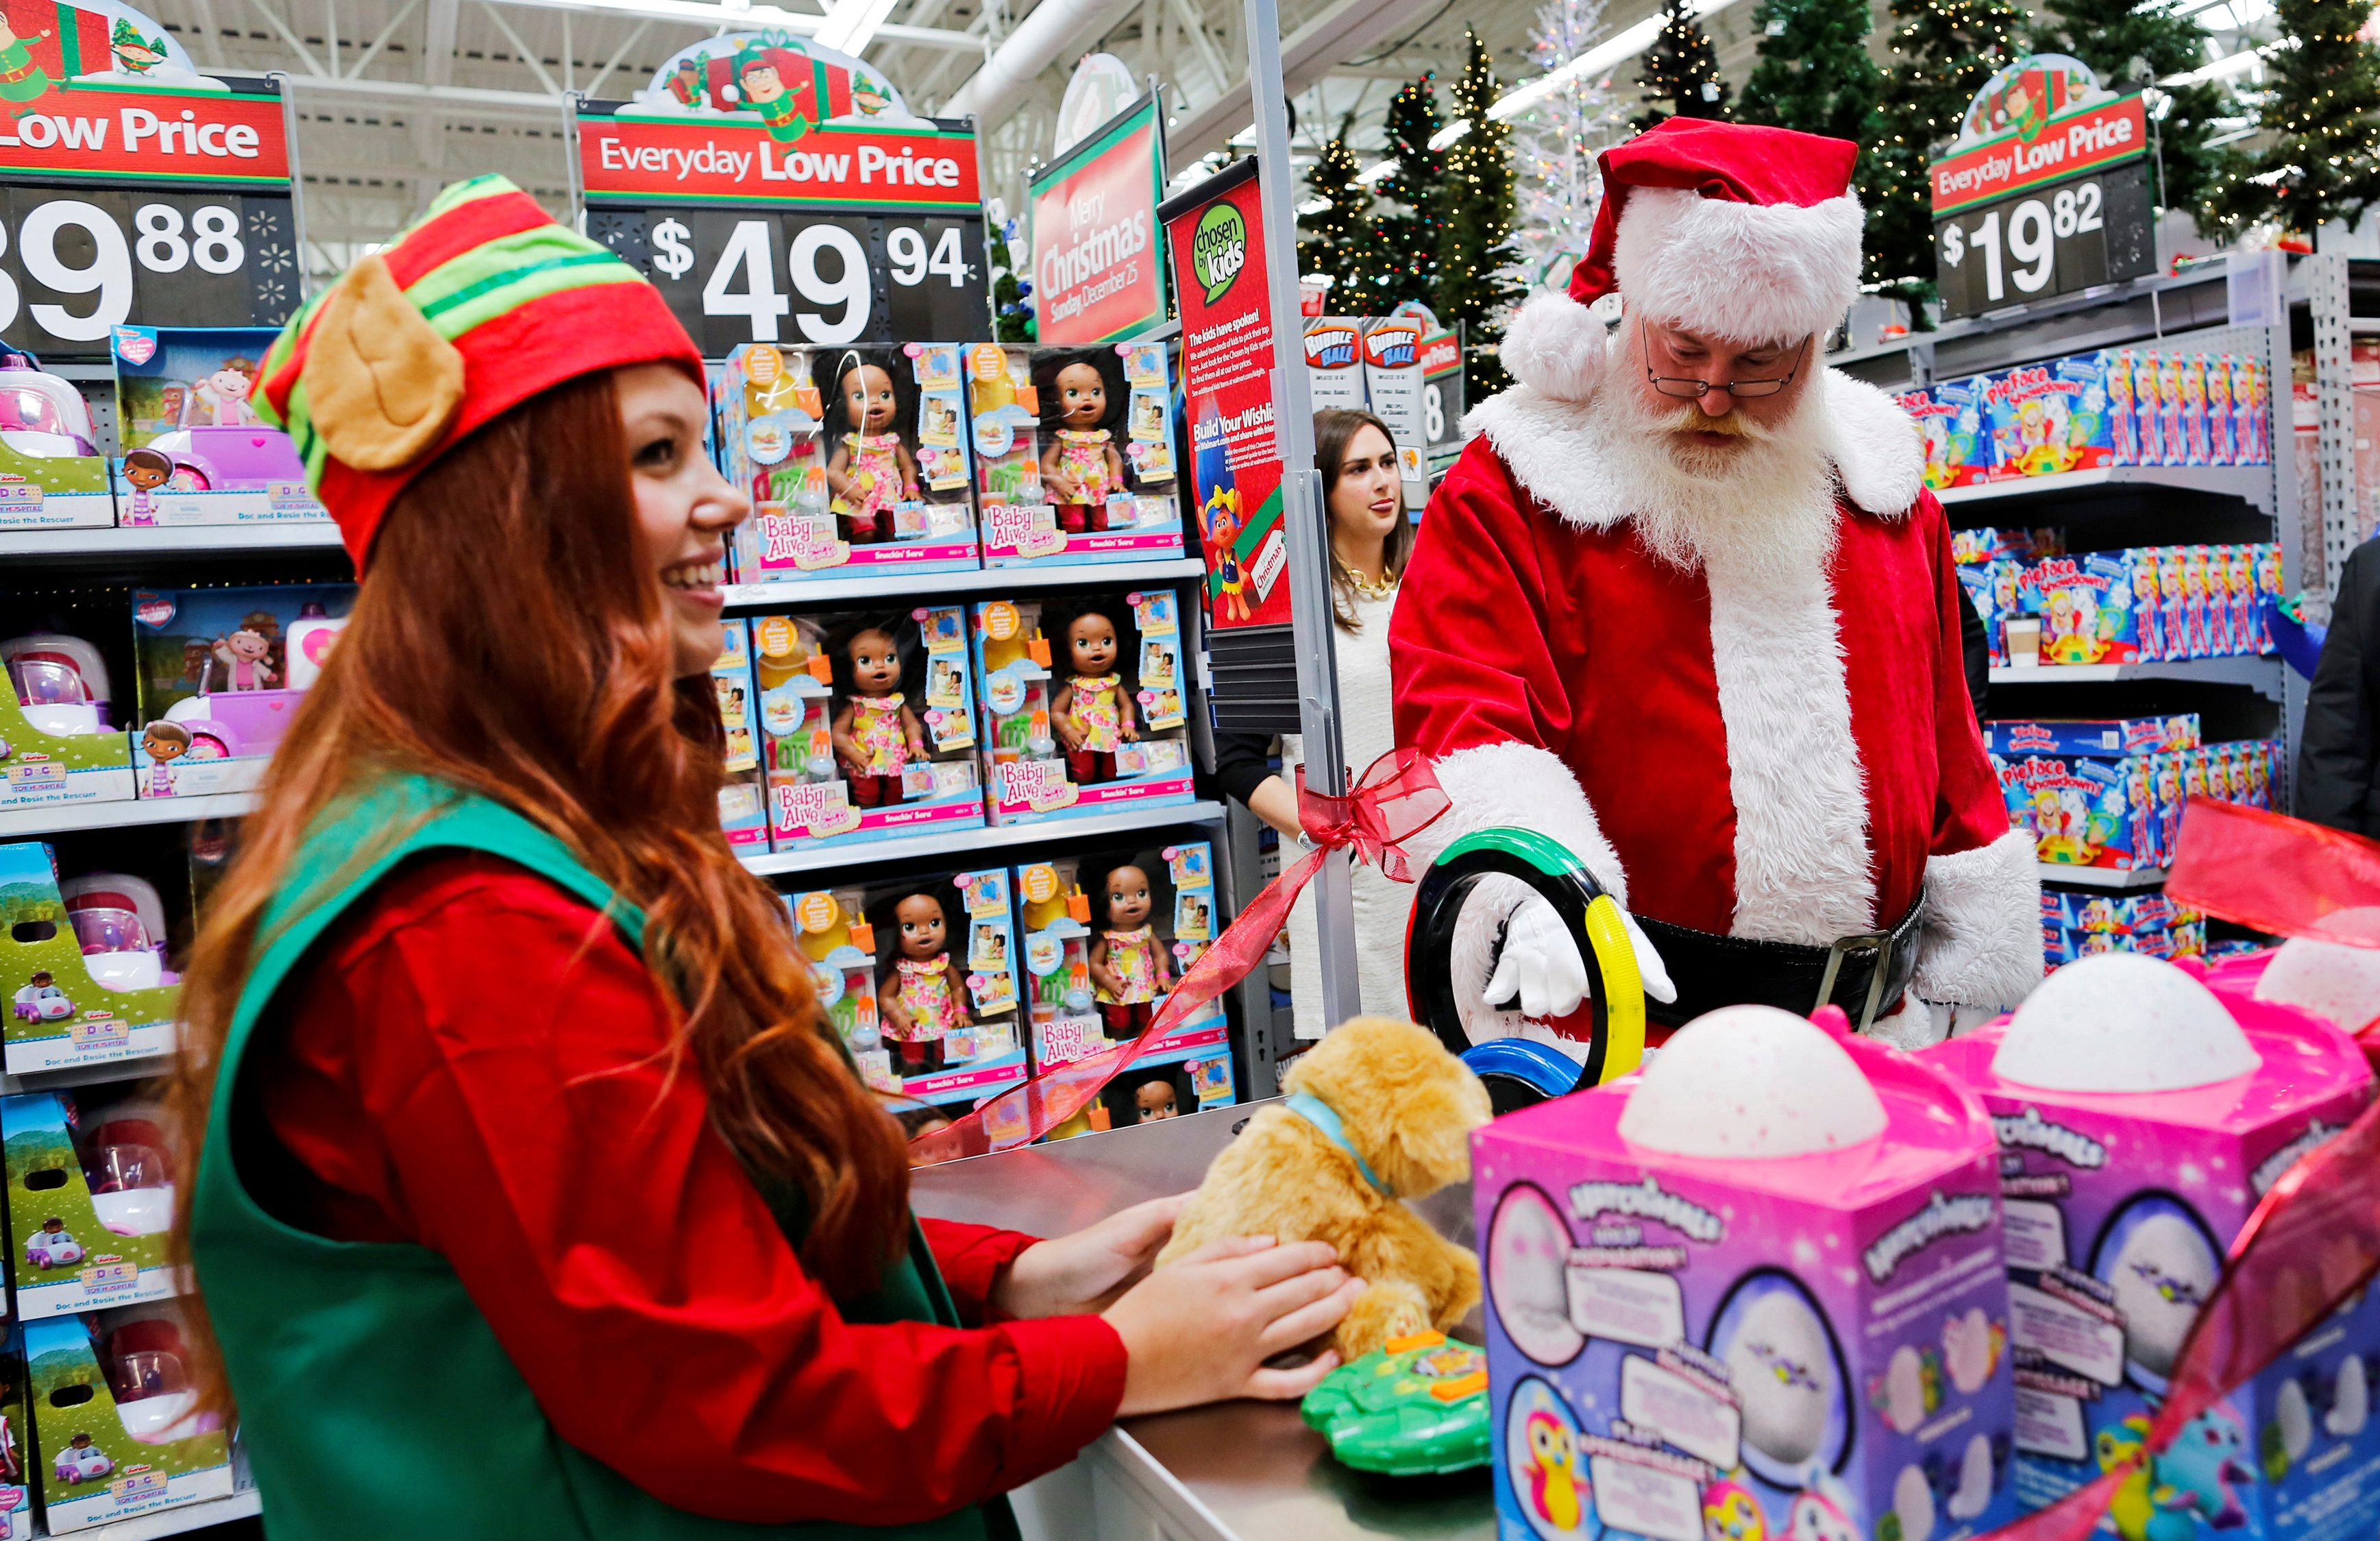 People dressed as Santa Claus and Elf show products for Christmas season at a Walmart store in Teterboro, New Jersey, U.S., October 26, 2016.